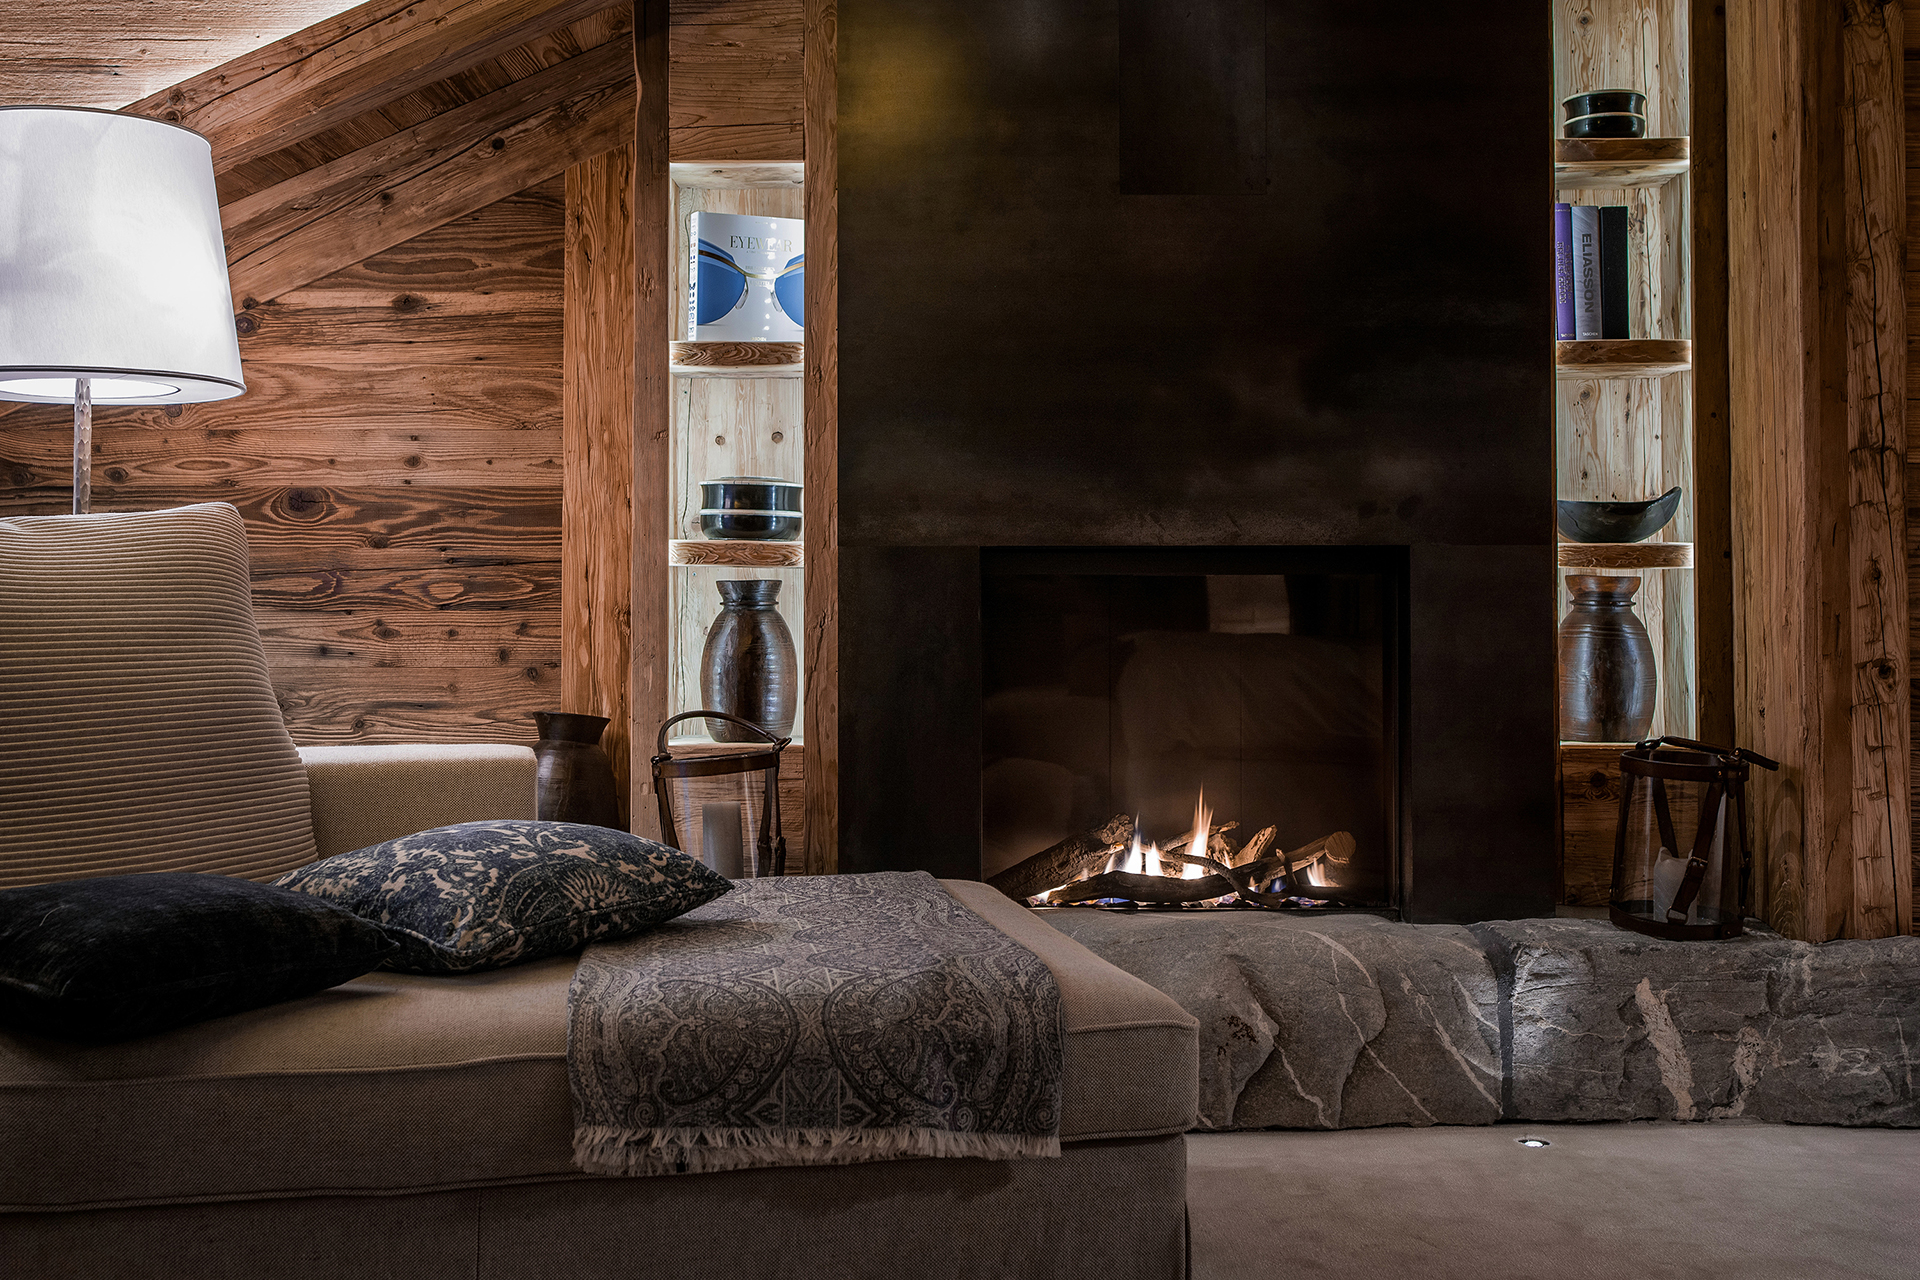 TheAlpinaGstaad_Rooms&Suites_0146_1920.jpg